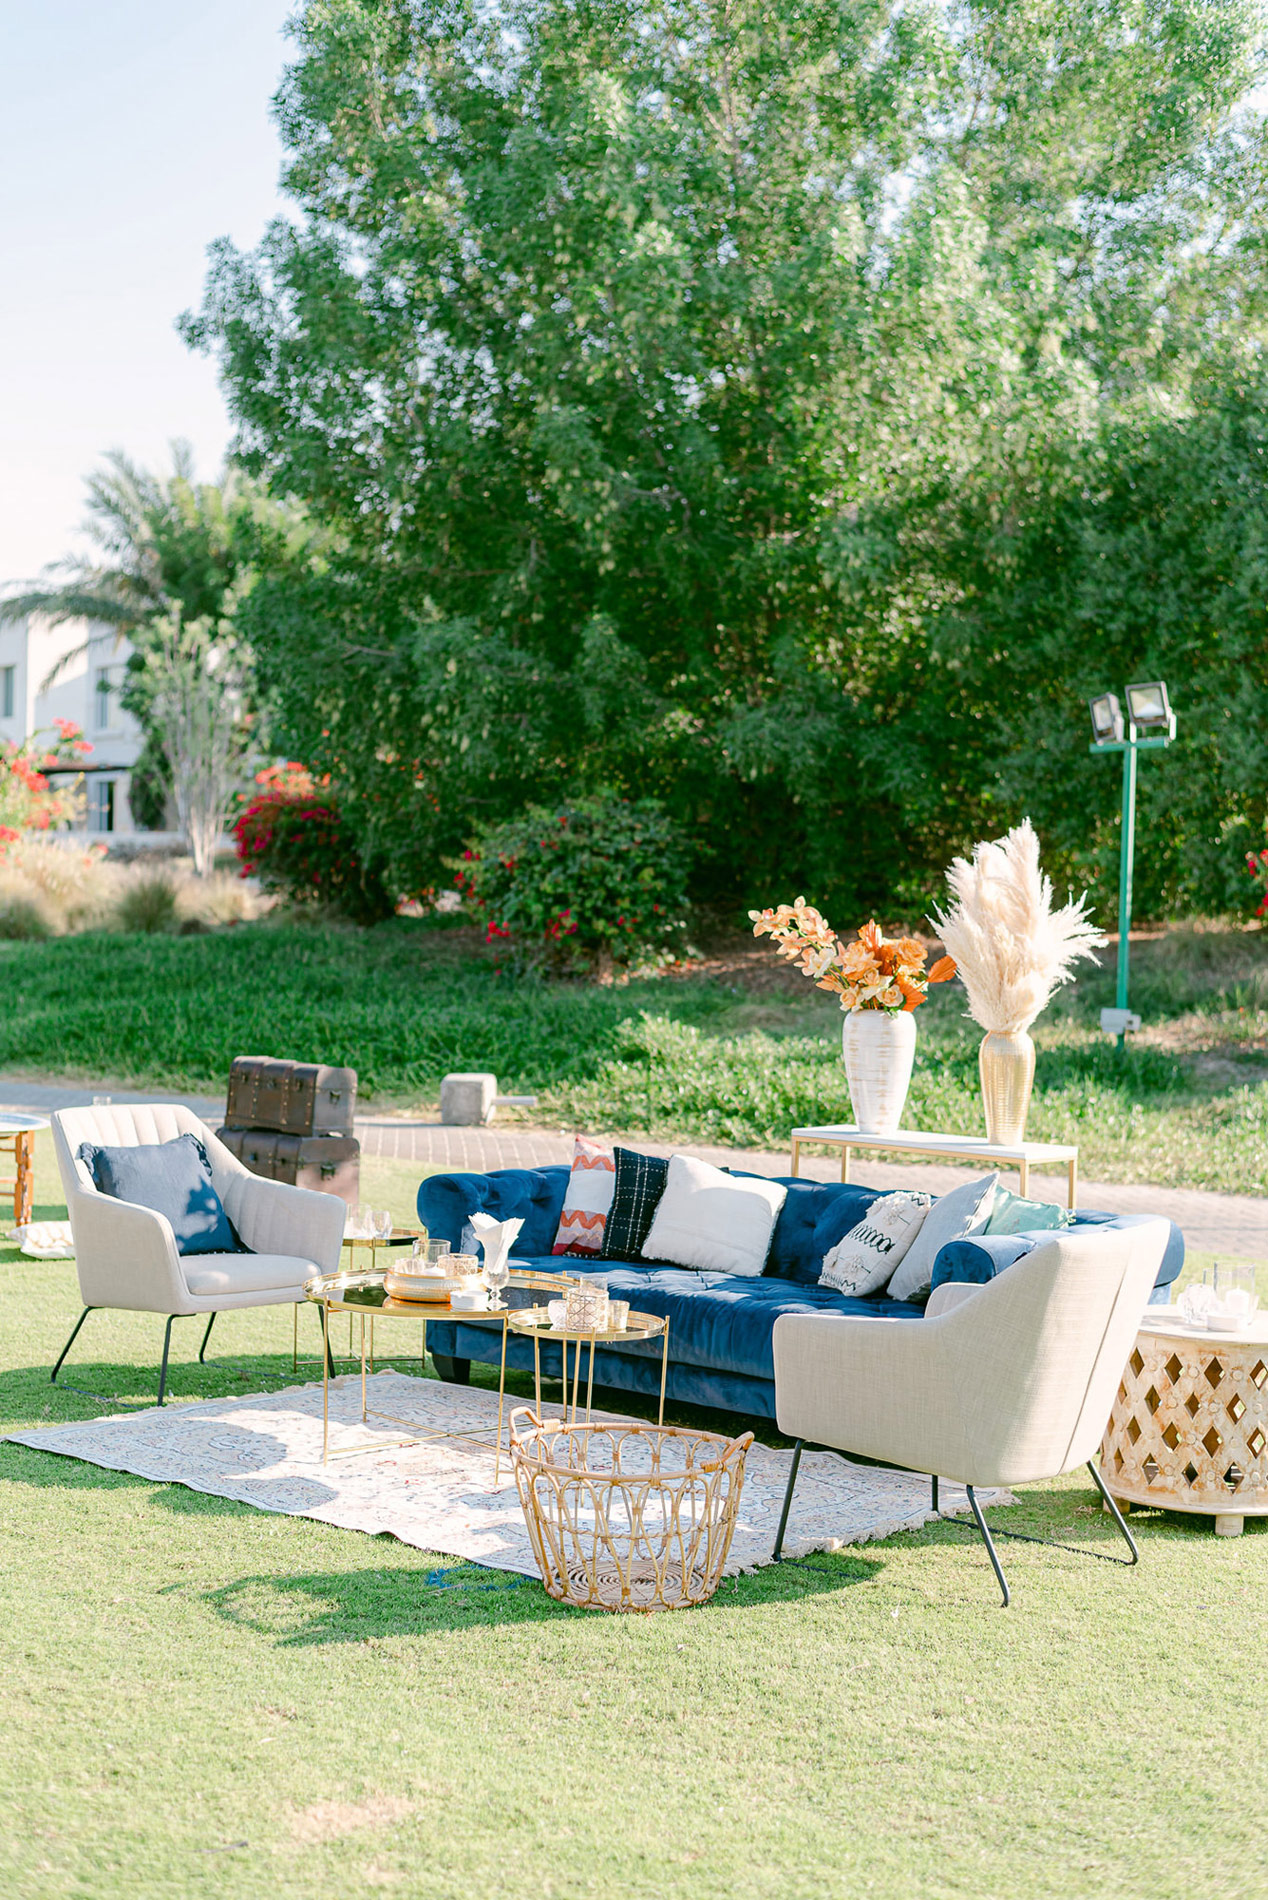 outdoor wedding lounge with couches and chairs